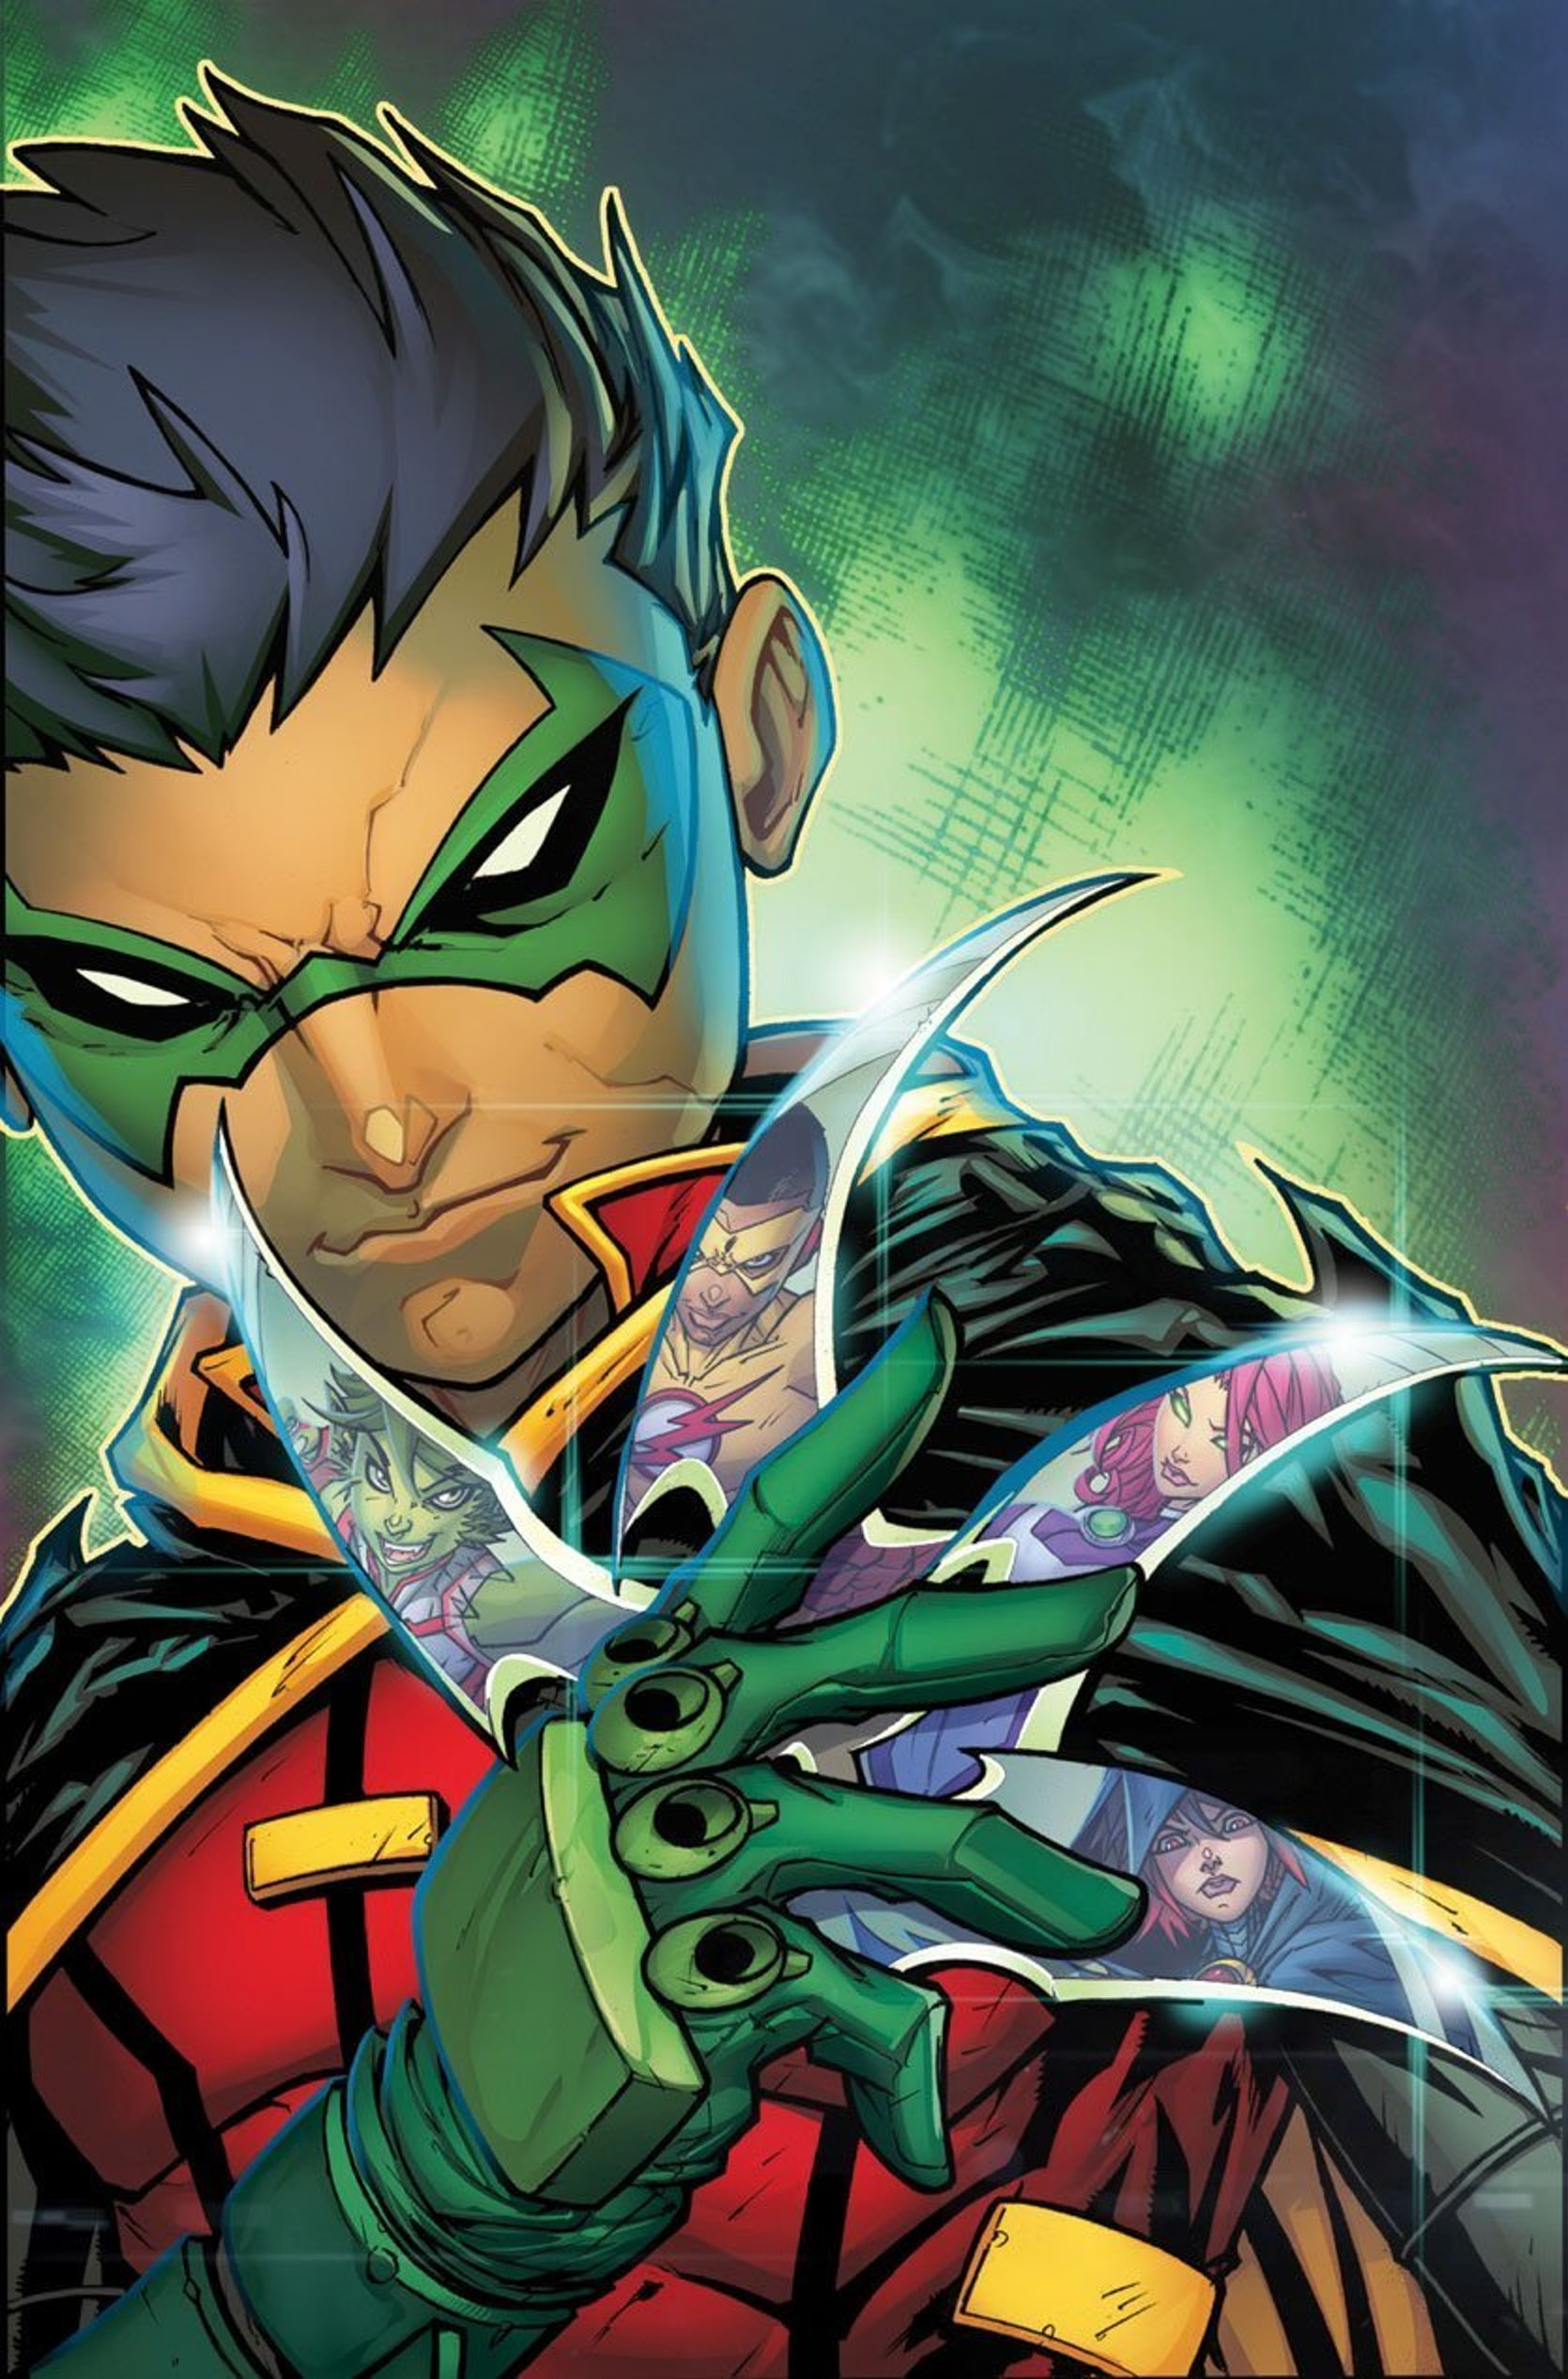 Damian Wayne, dressed as Robin, assembles his deadly team of teenagers.